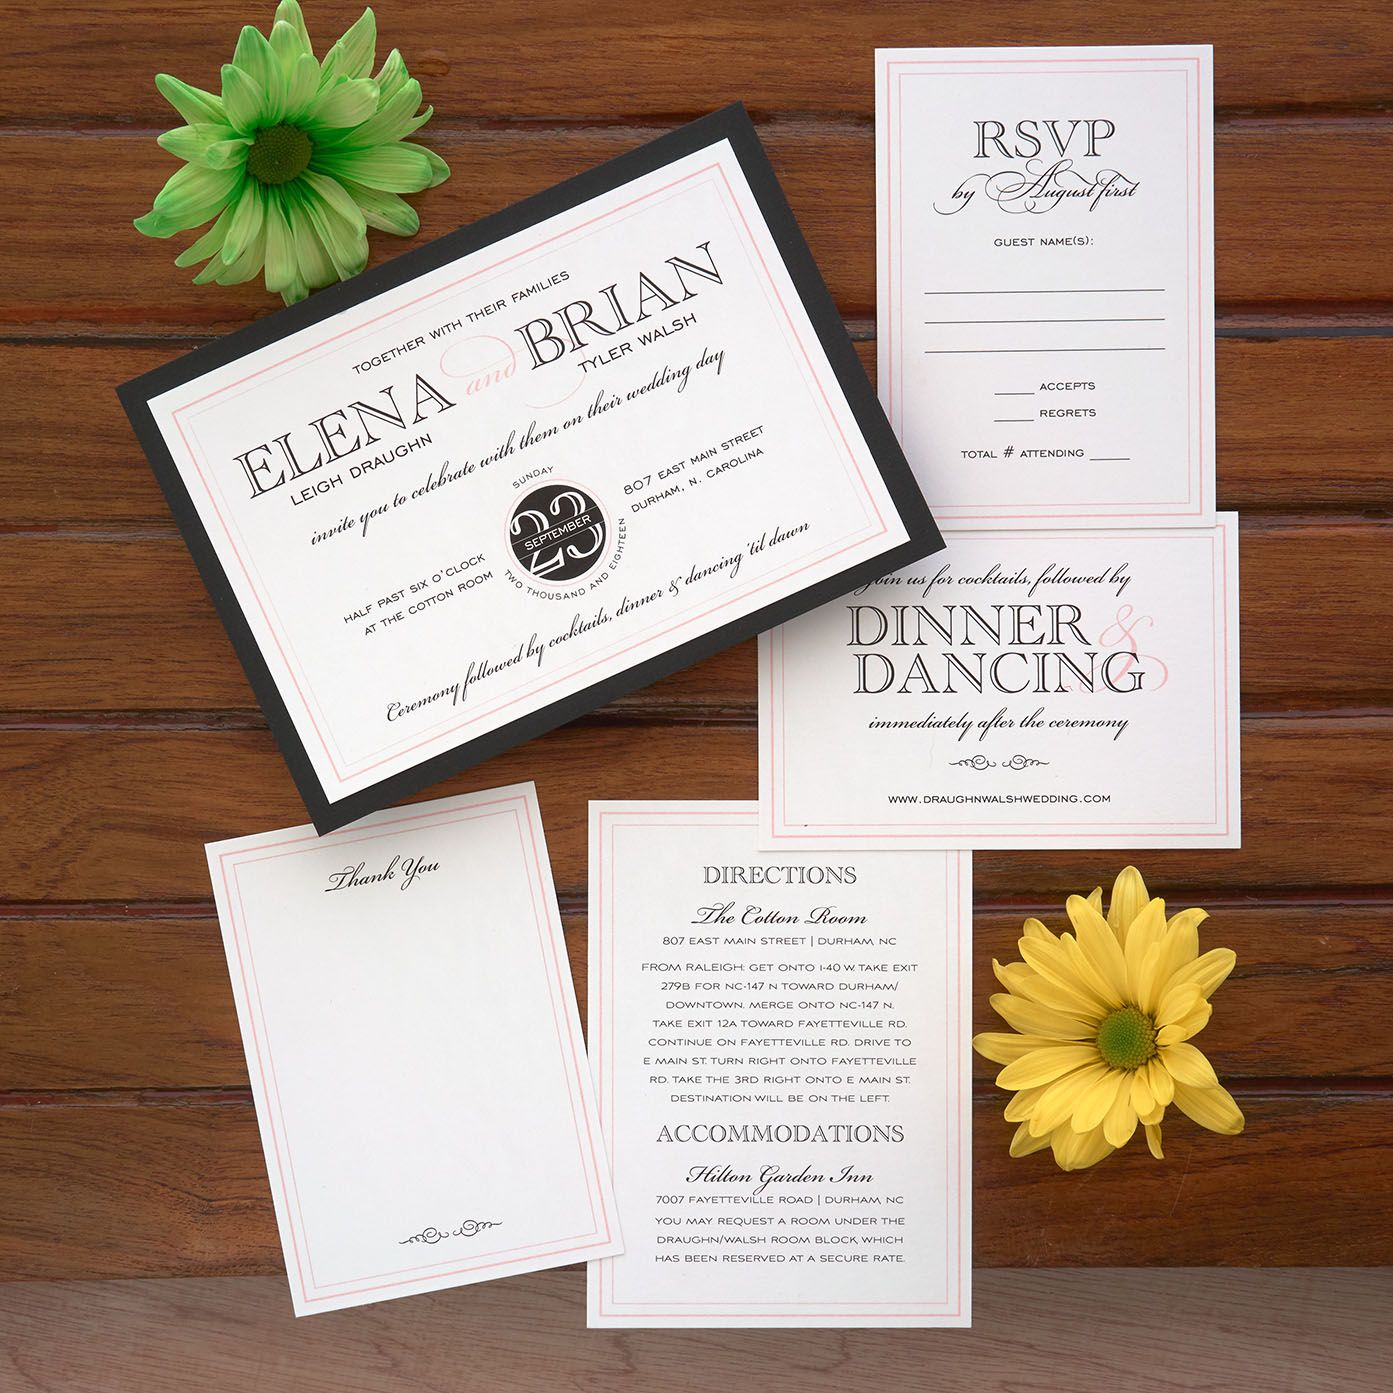 cosmopolitan wedding invitations the american wedding http://www, Wedding invitations